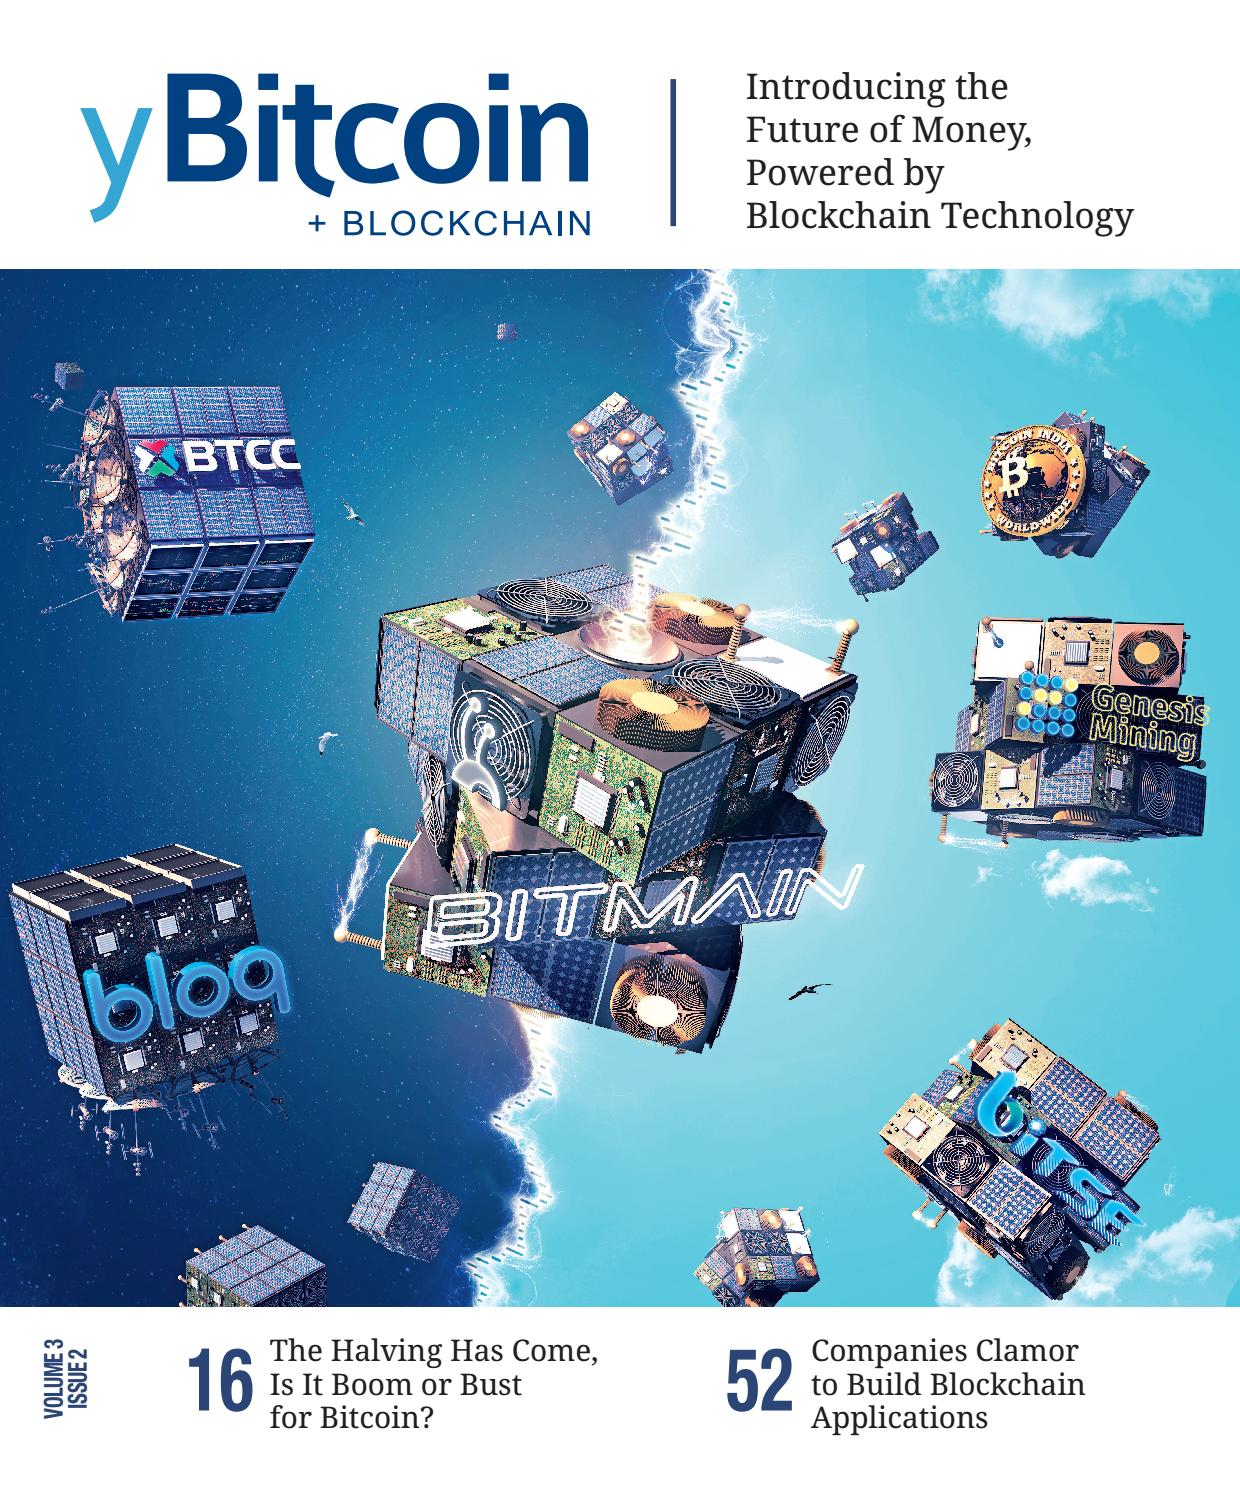 Volume 3, Issue 2 by yBitcoin - issuu